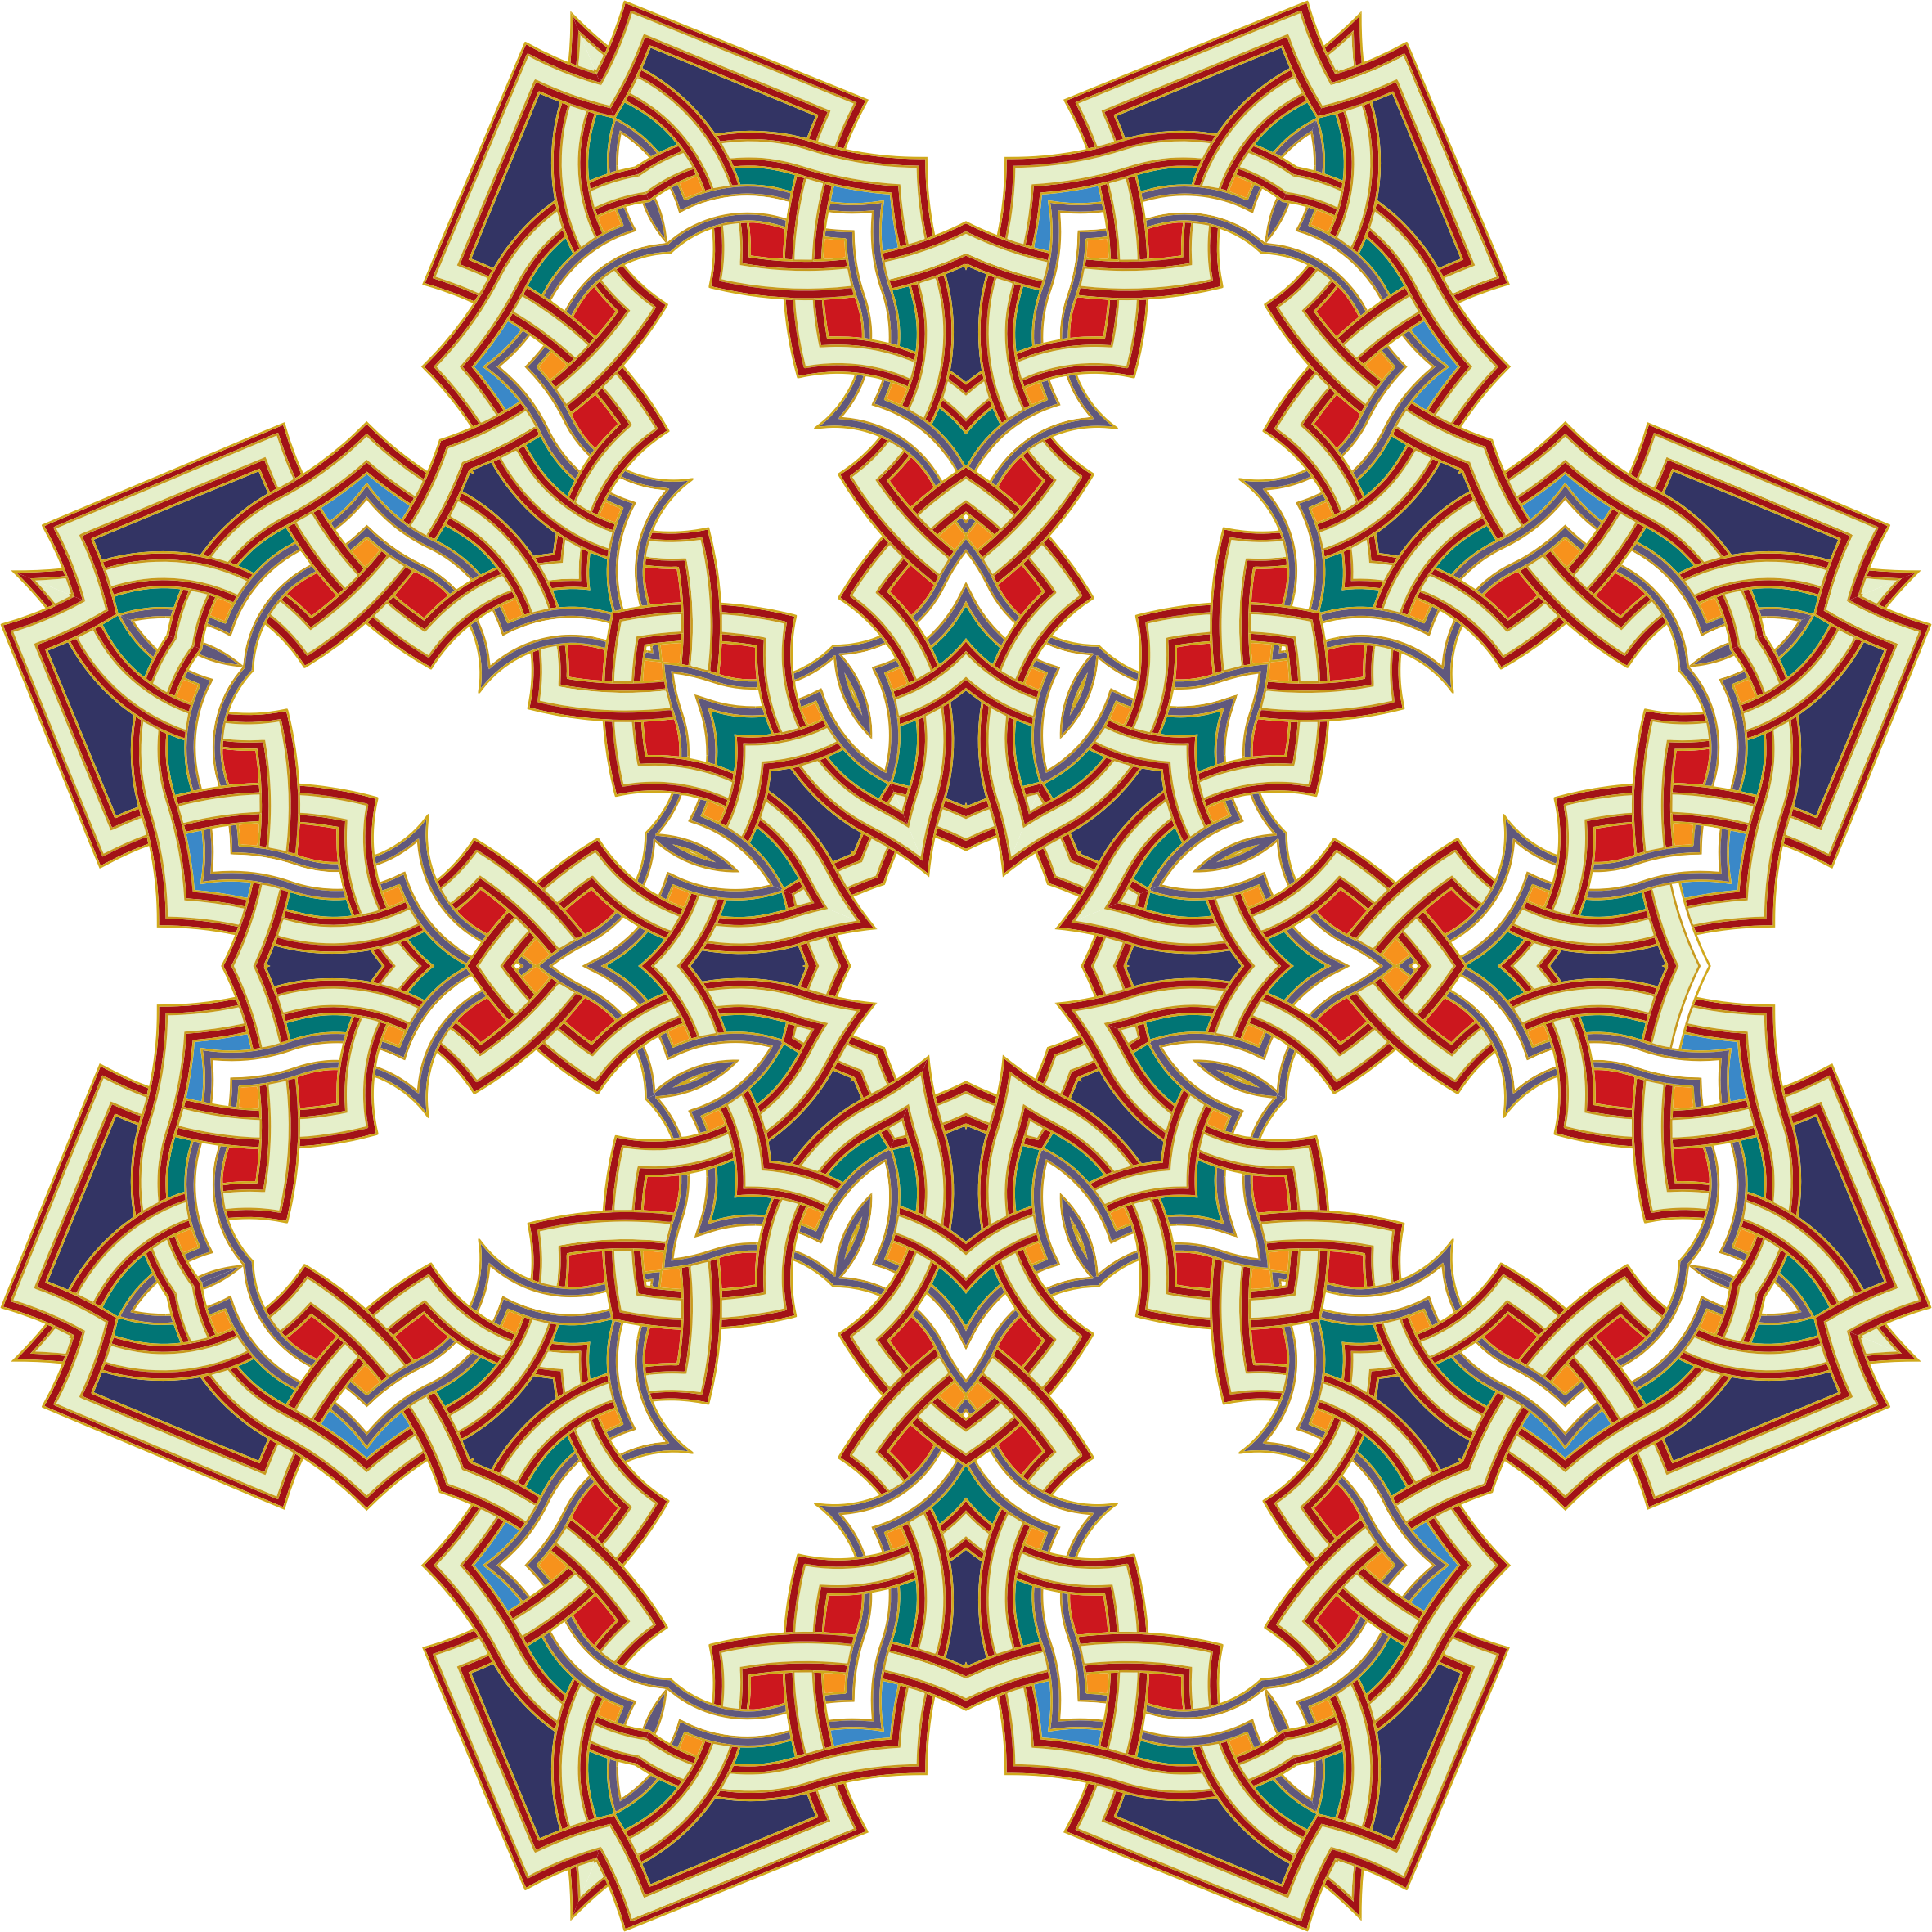 Islamic Geometric Art 2 by GDJ